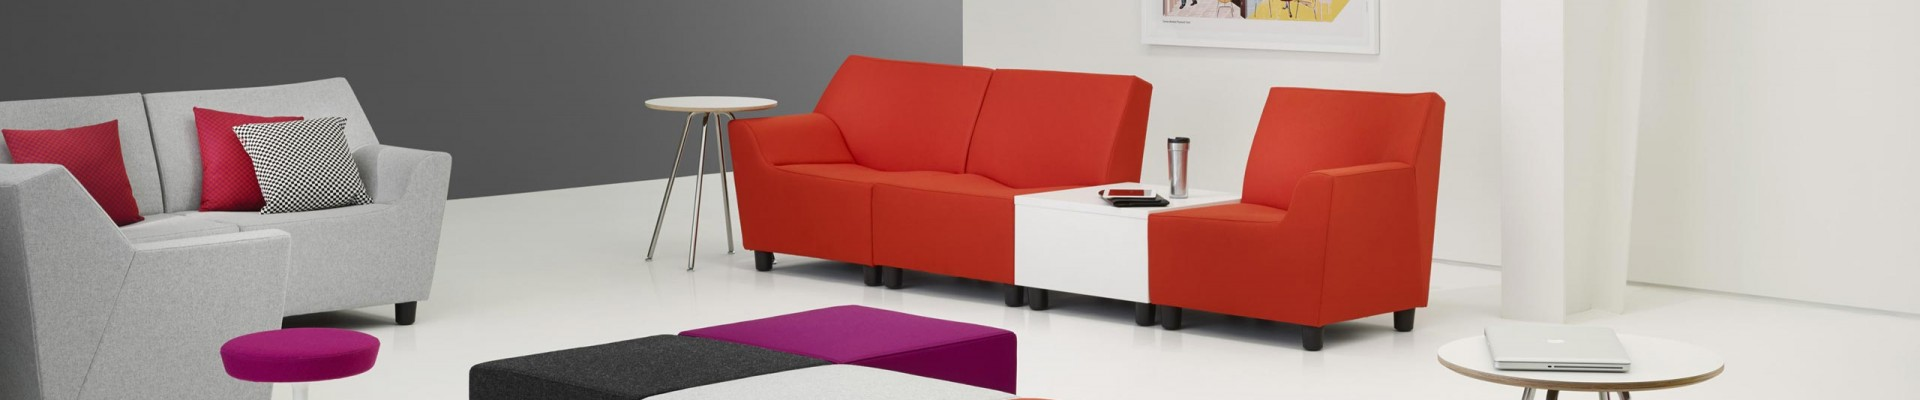 Sofa Chairs Upholstery In Dubai Furniture Factory Dubai Uae